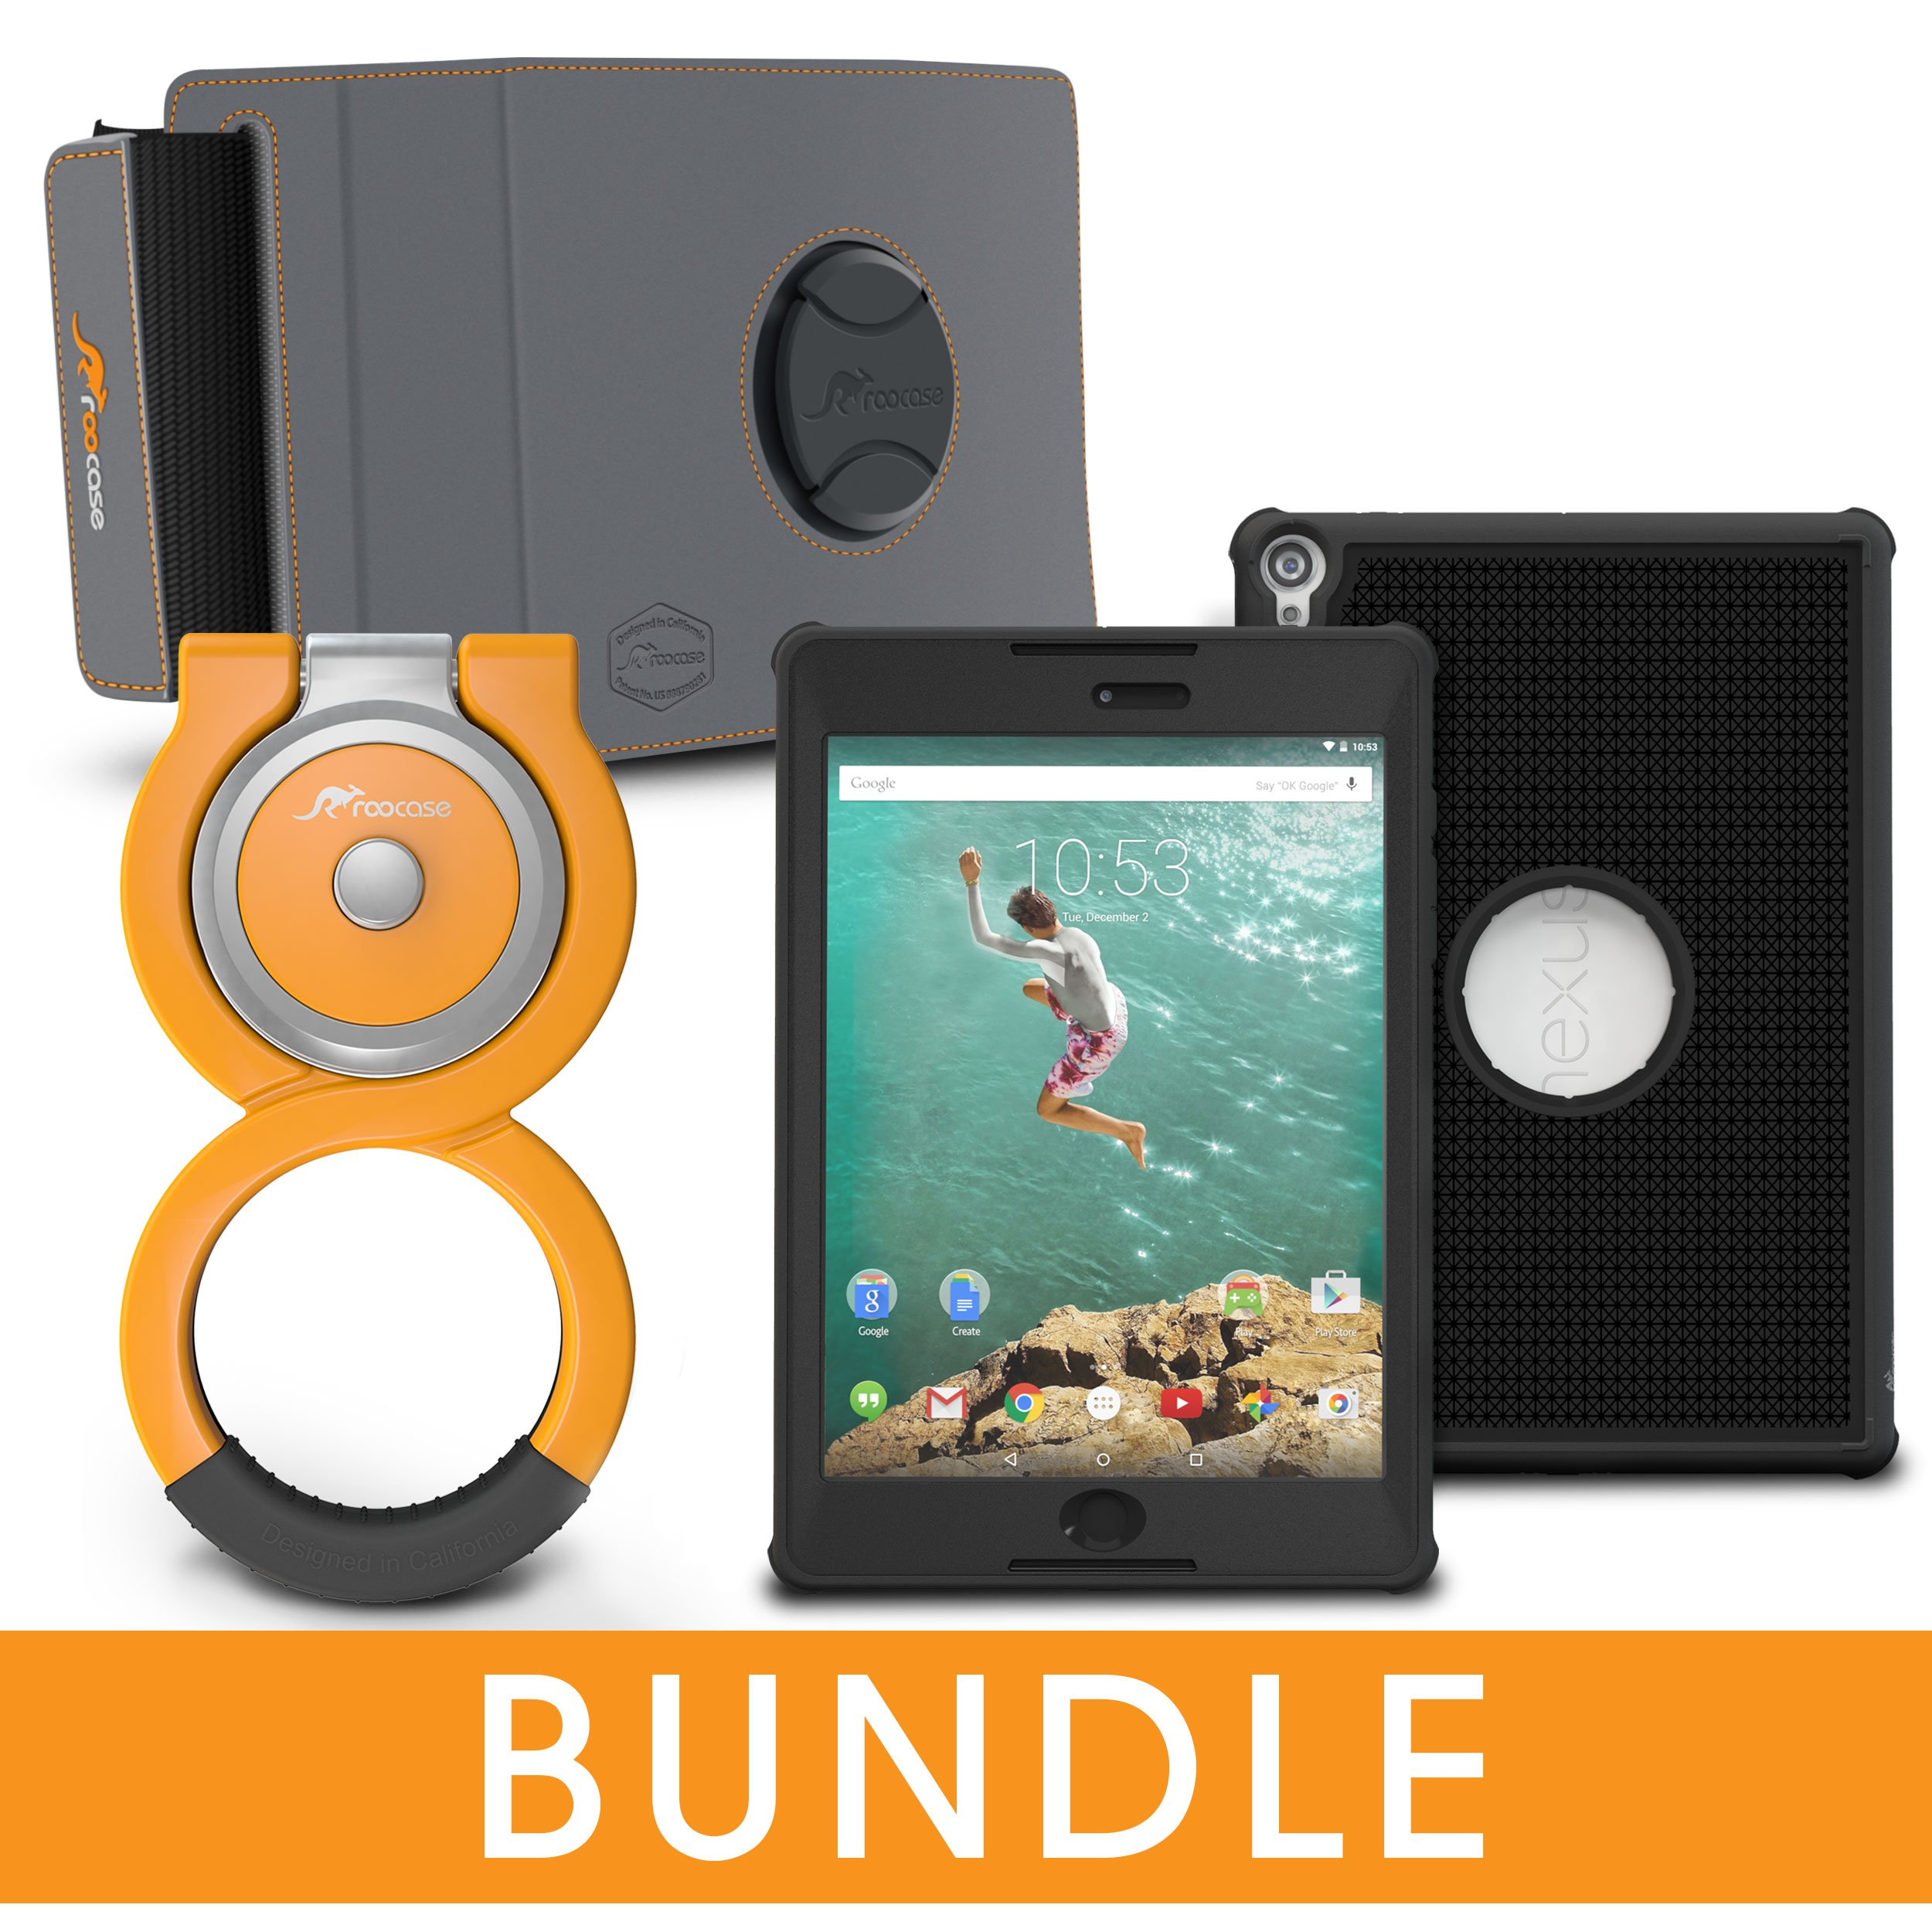 roocase Nexus 9 Orb Bundle, Versa Tough Full Body Case for Google Nexus 9 Case , Granite Black by rooCASE